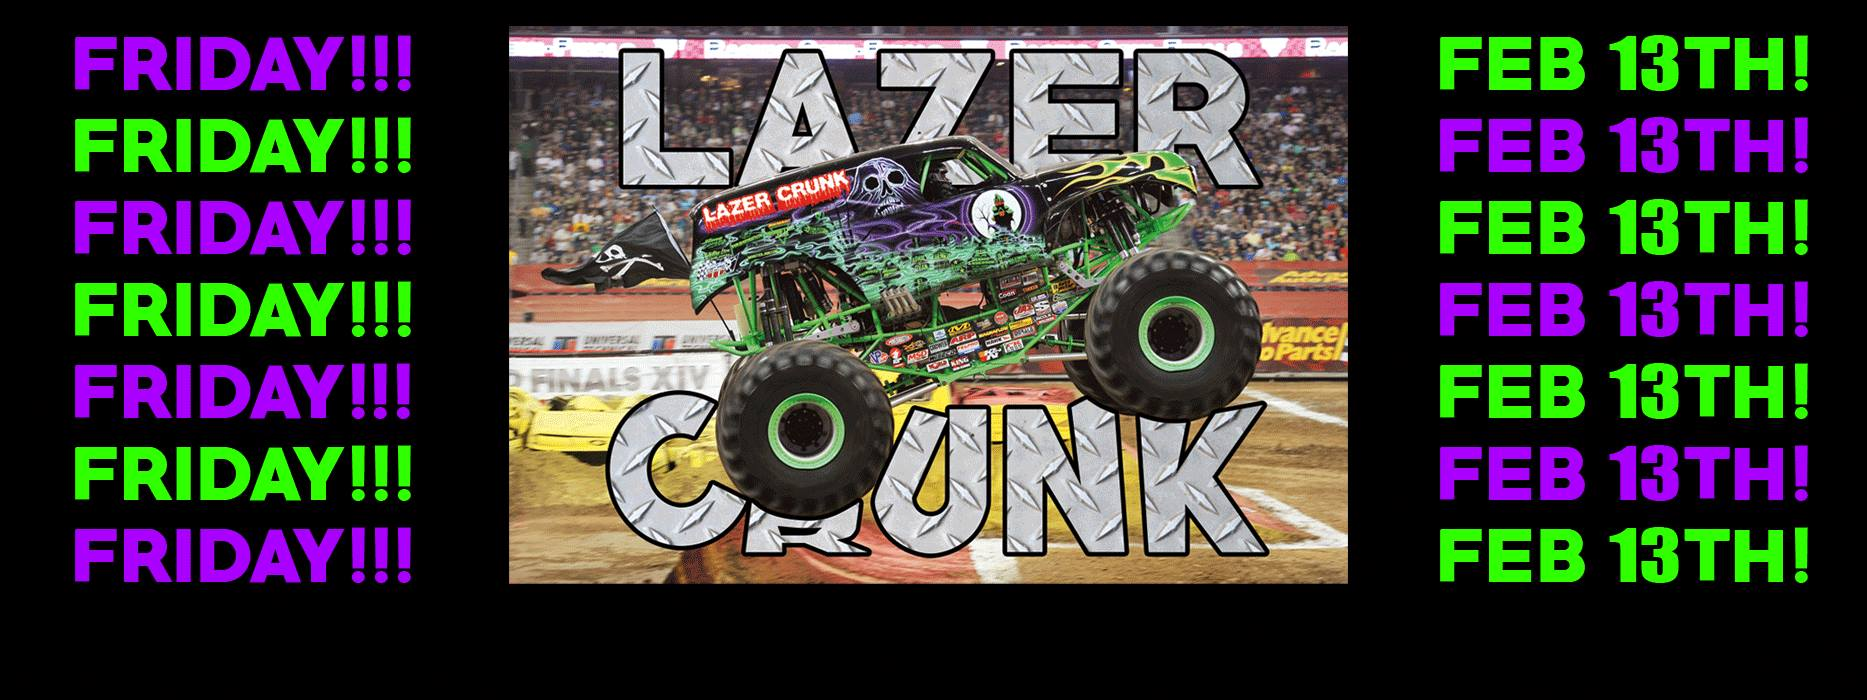 Feb 13th LAZERCRUNK *MONSTER TRUCK edition* w/ TONY PARM, Cutups & Keeb$ @ Brillobox